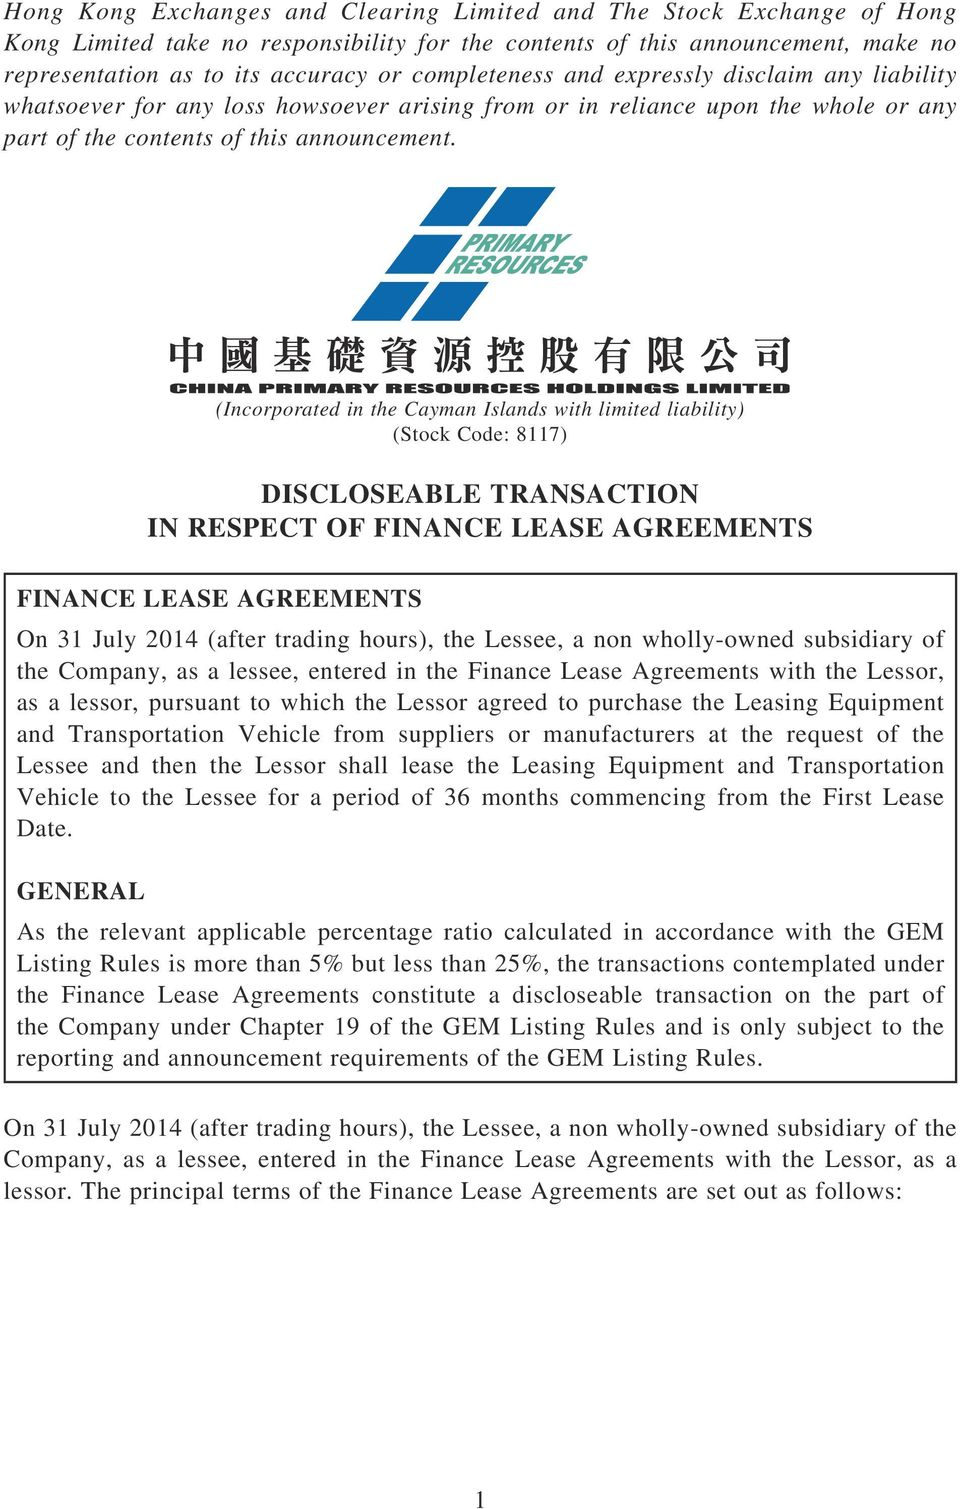 (Incorporated in the Cayman Islands with limited liability) (Stock Code: 8117) DISCLOSEABLE TRANSACTION IN RESPECT OF FINANCE LEASE AGREEMENTS FINANCE LEASE AGREEMENTS On 31 July 2014 (after trading